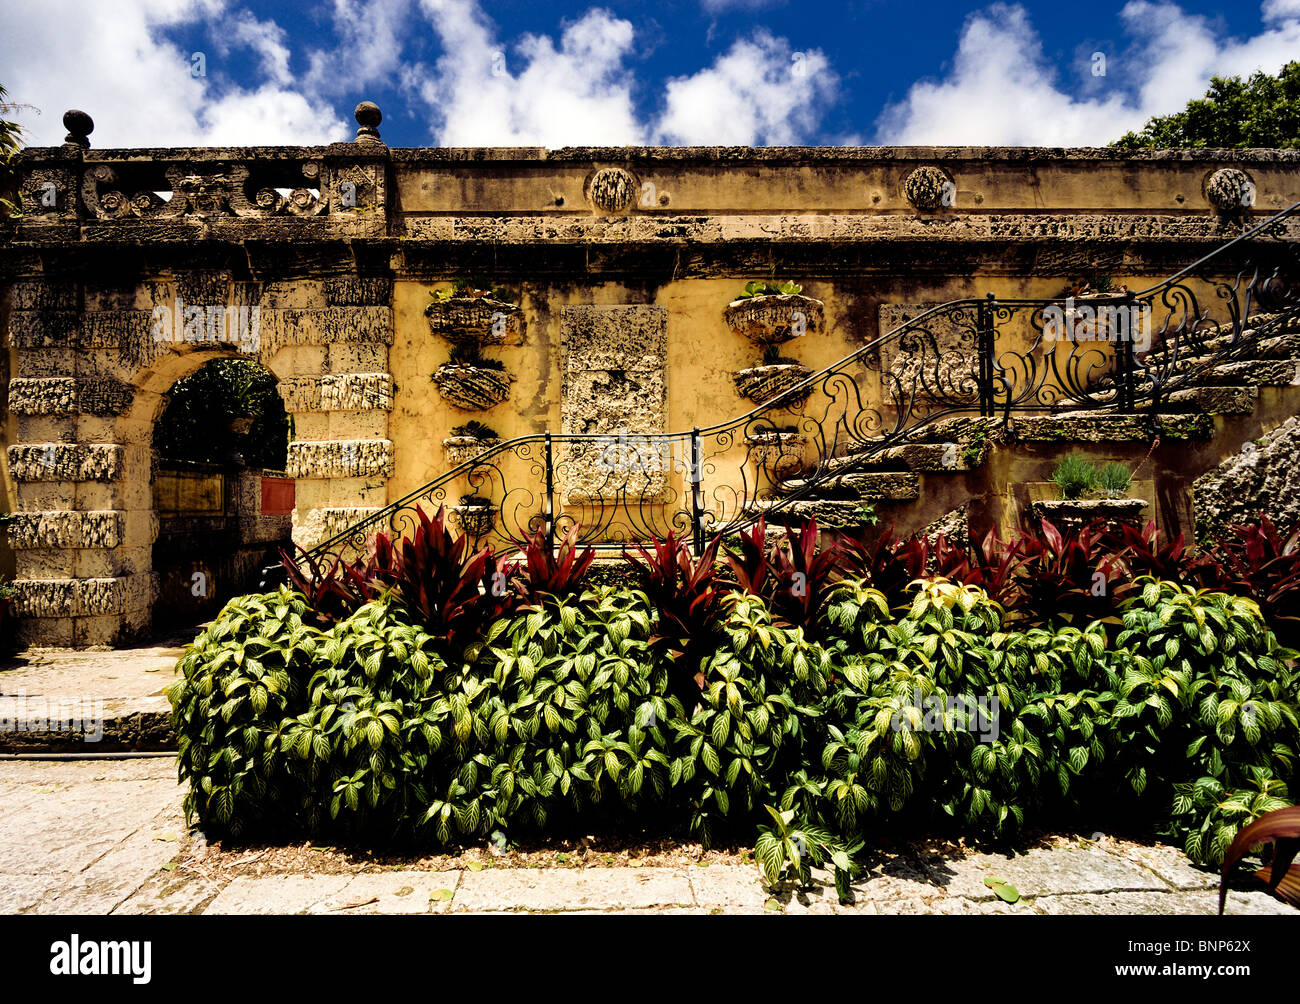 The Secret Garden at Vizcaya Museum and Gardens is the landmark ...